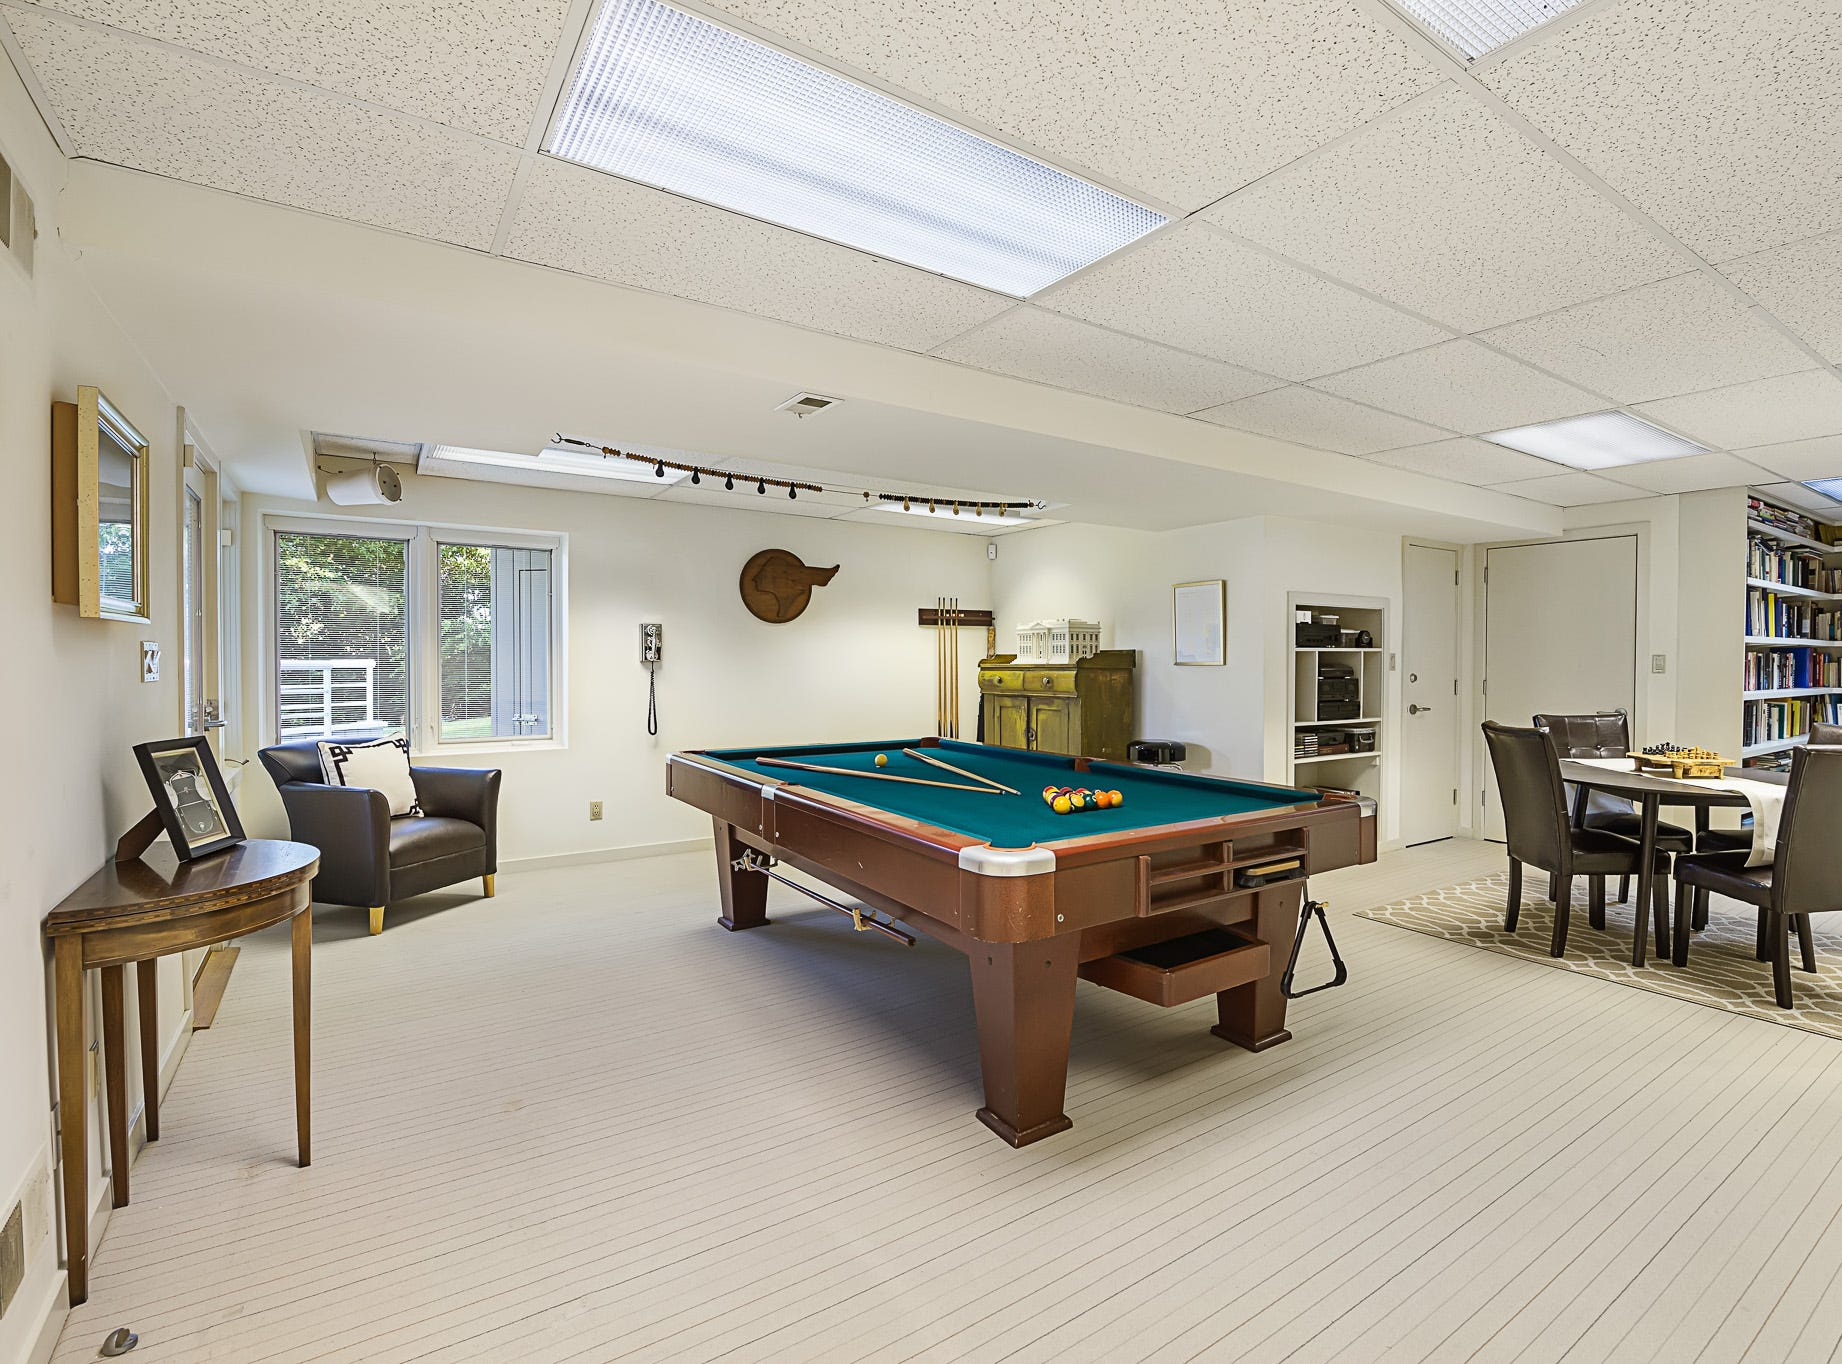 The lower level of 3611 Centerville Road in Greenville includes a game room and library.